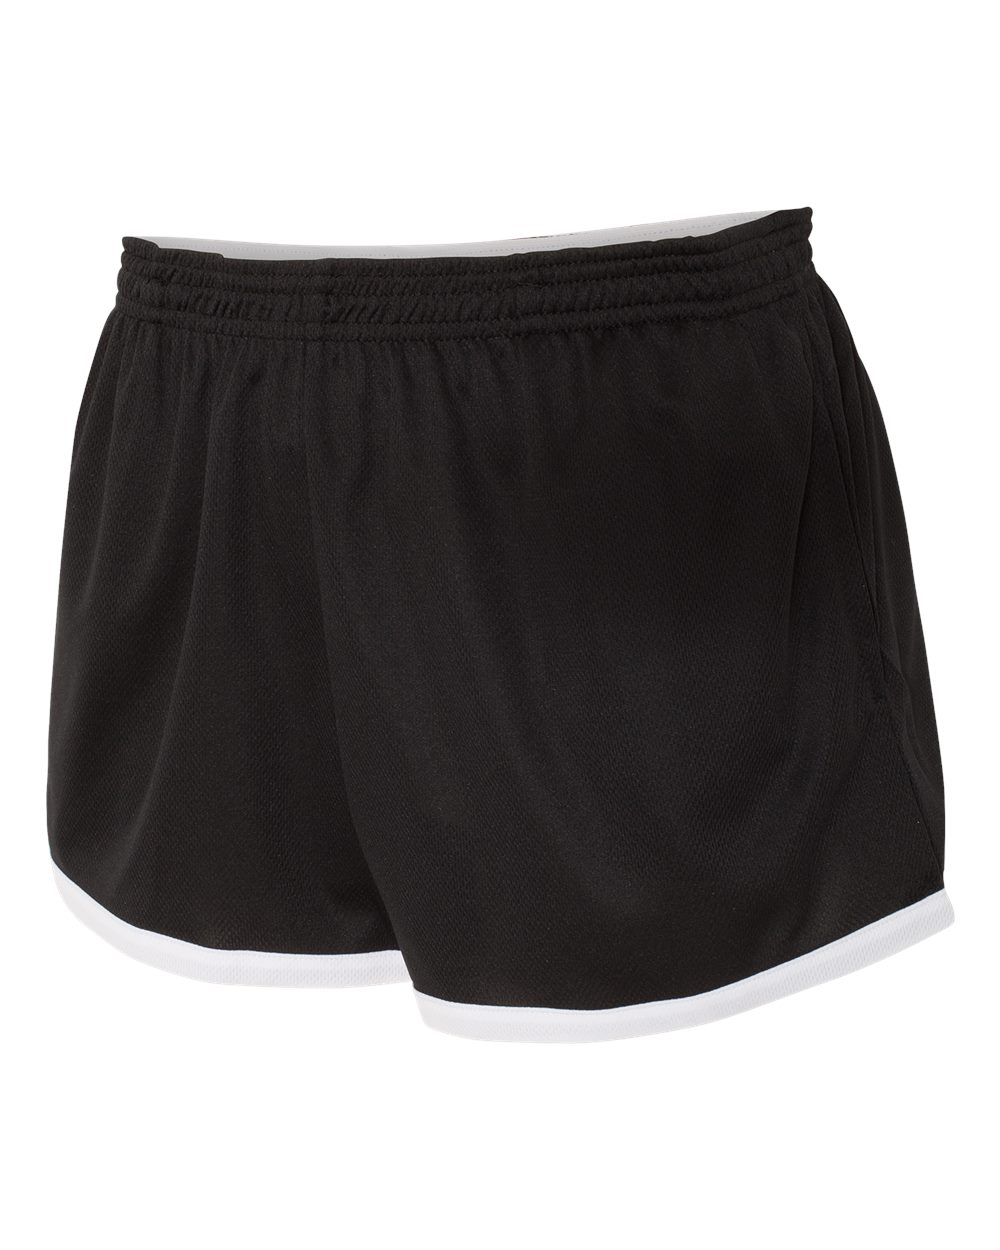 Boxercraft M66 - Women's Fast Break Mesh Shorts